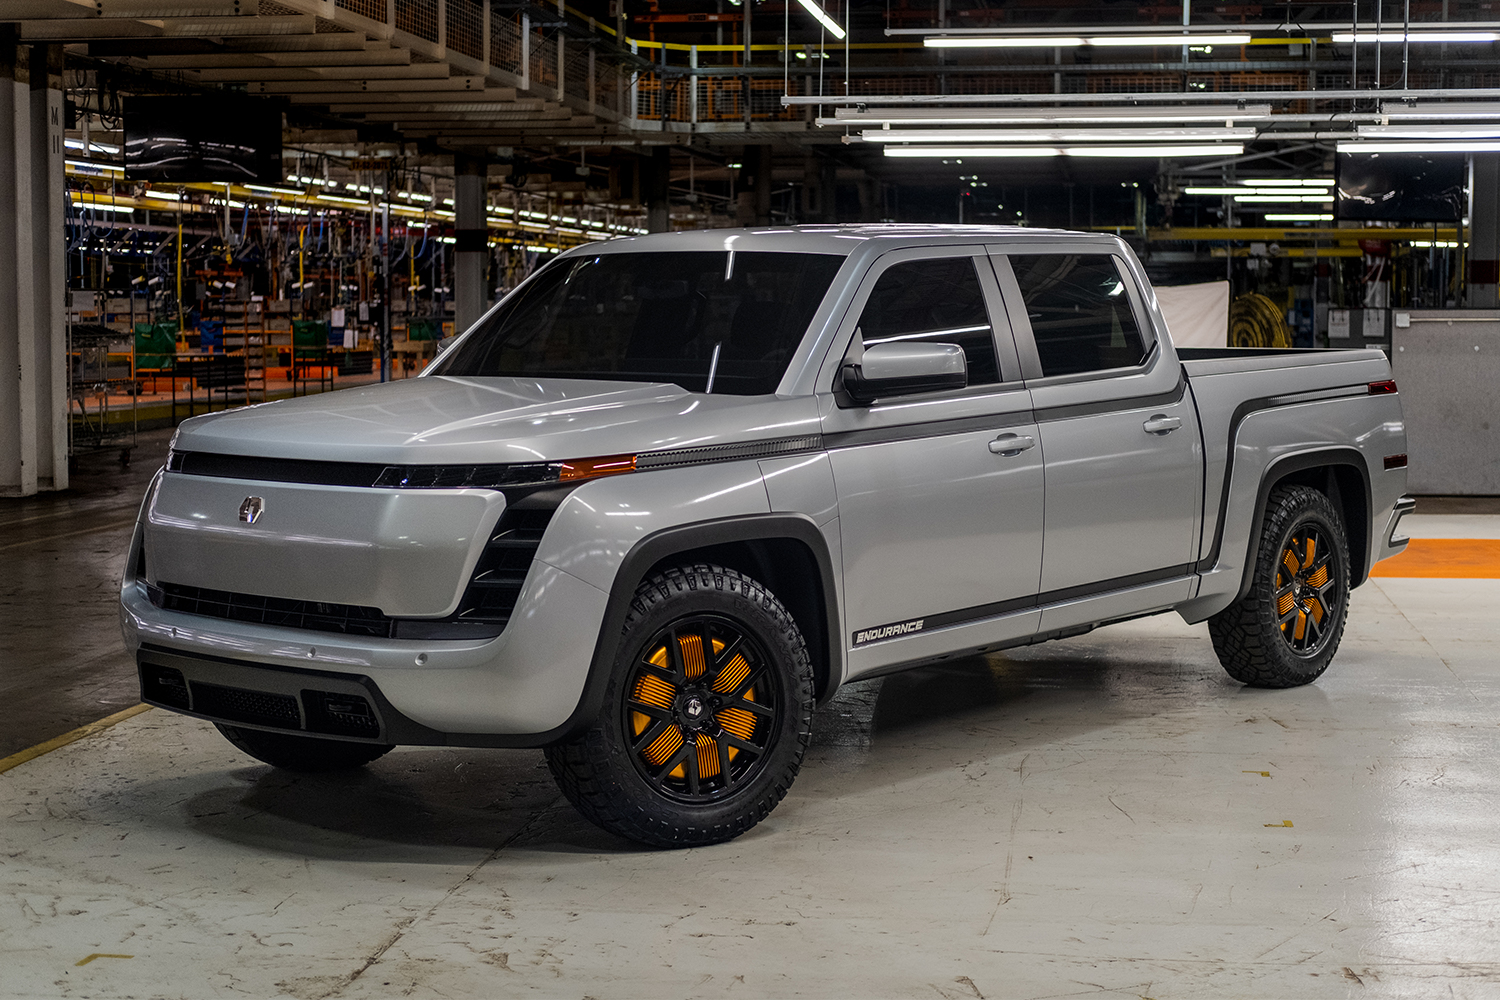 2021 Lordstown Endurance electric pickup truck